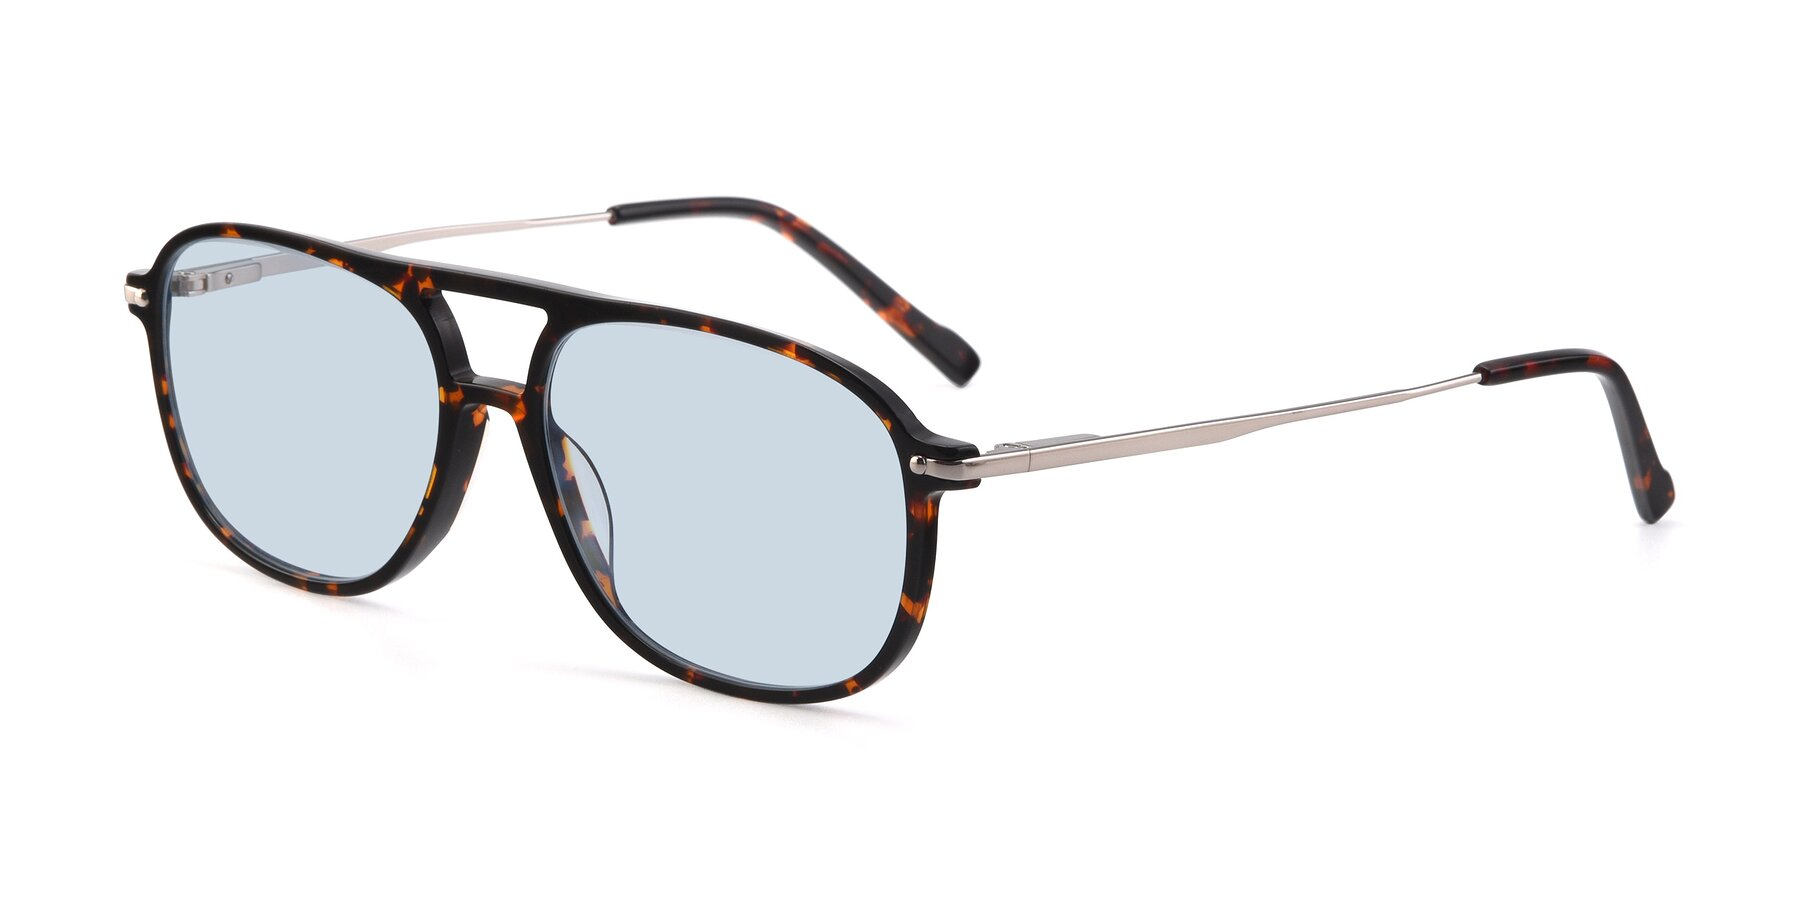 Angle of 17580 in Tortoise with Light Blue Tinted Lenses